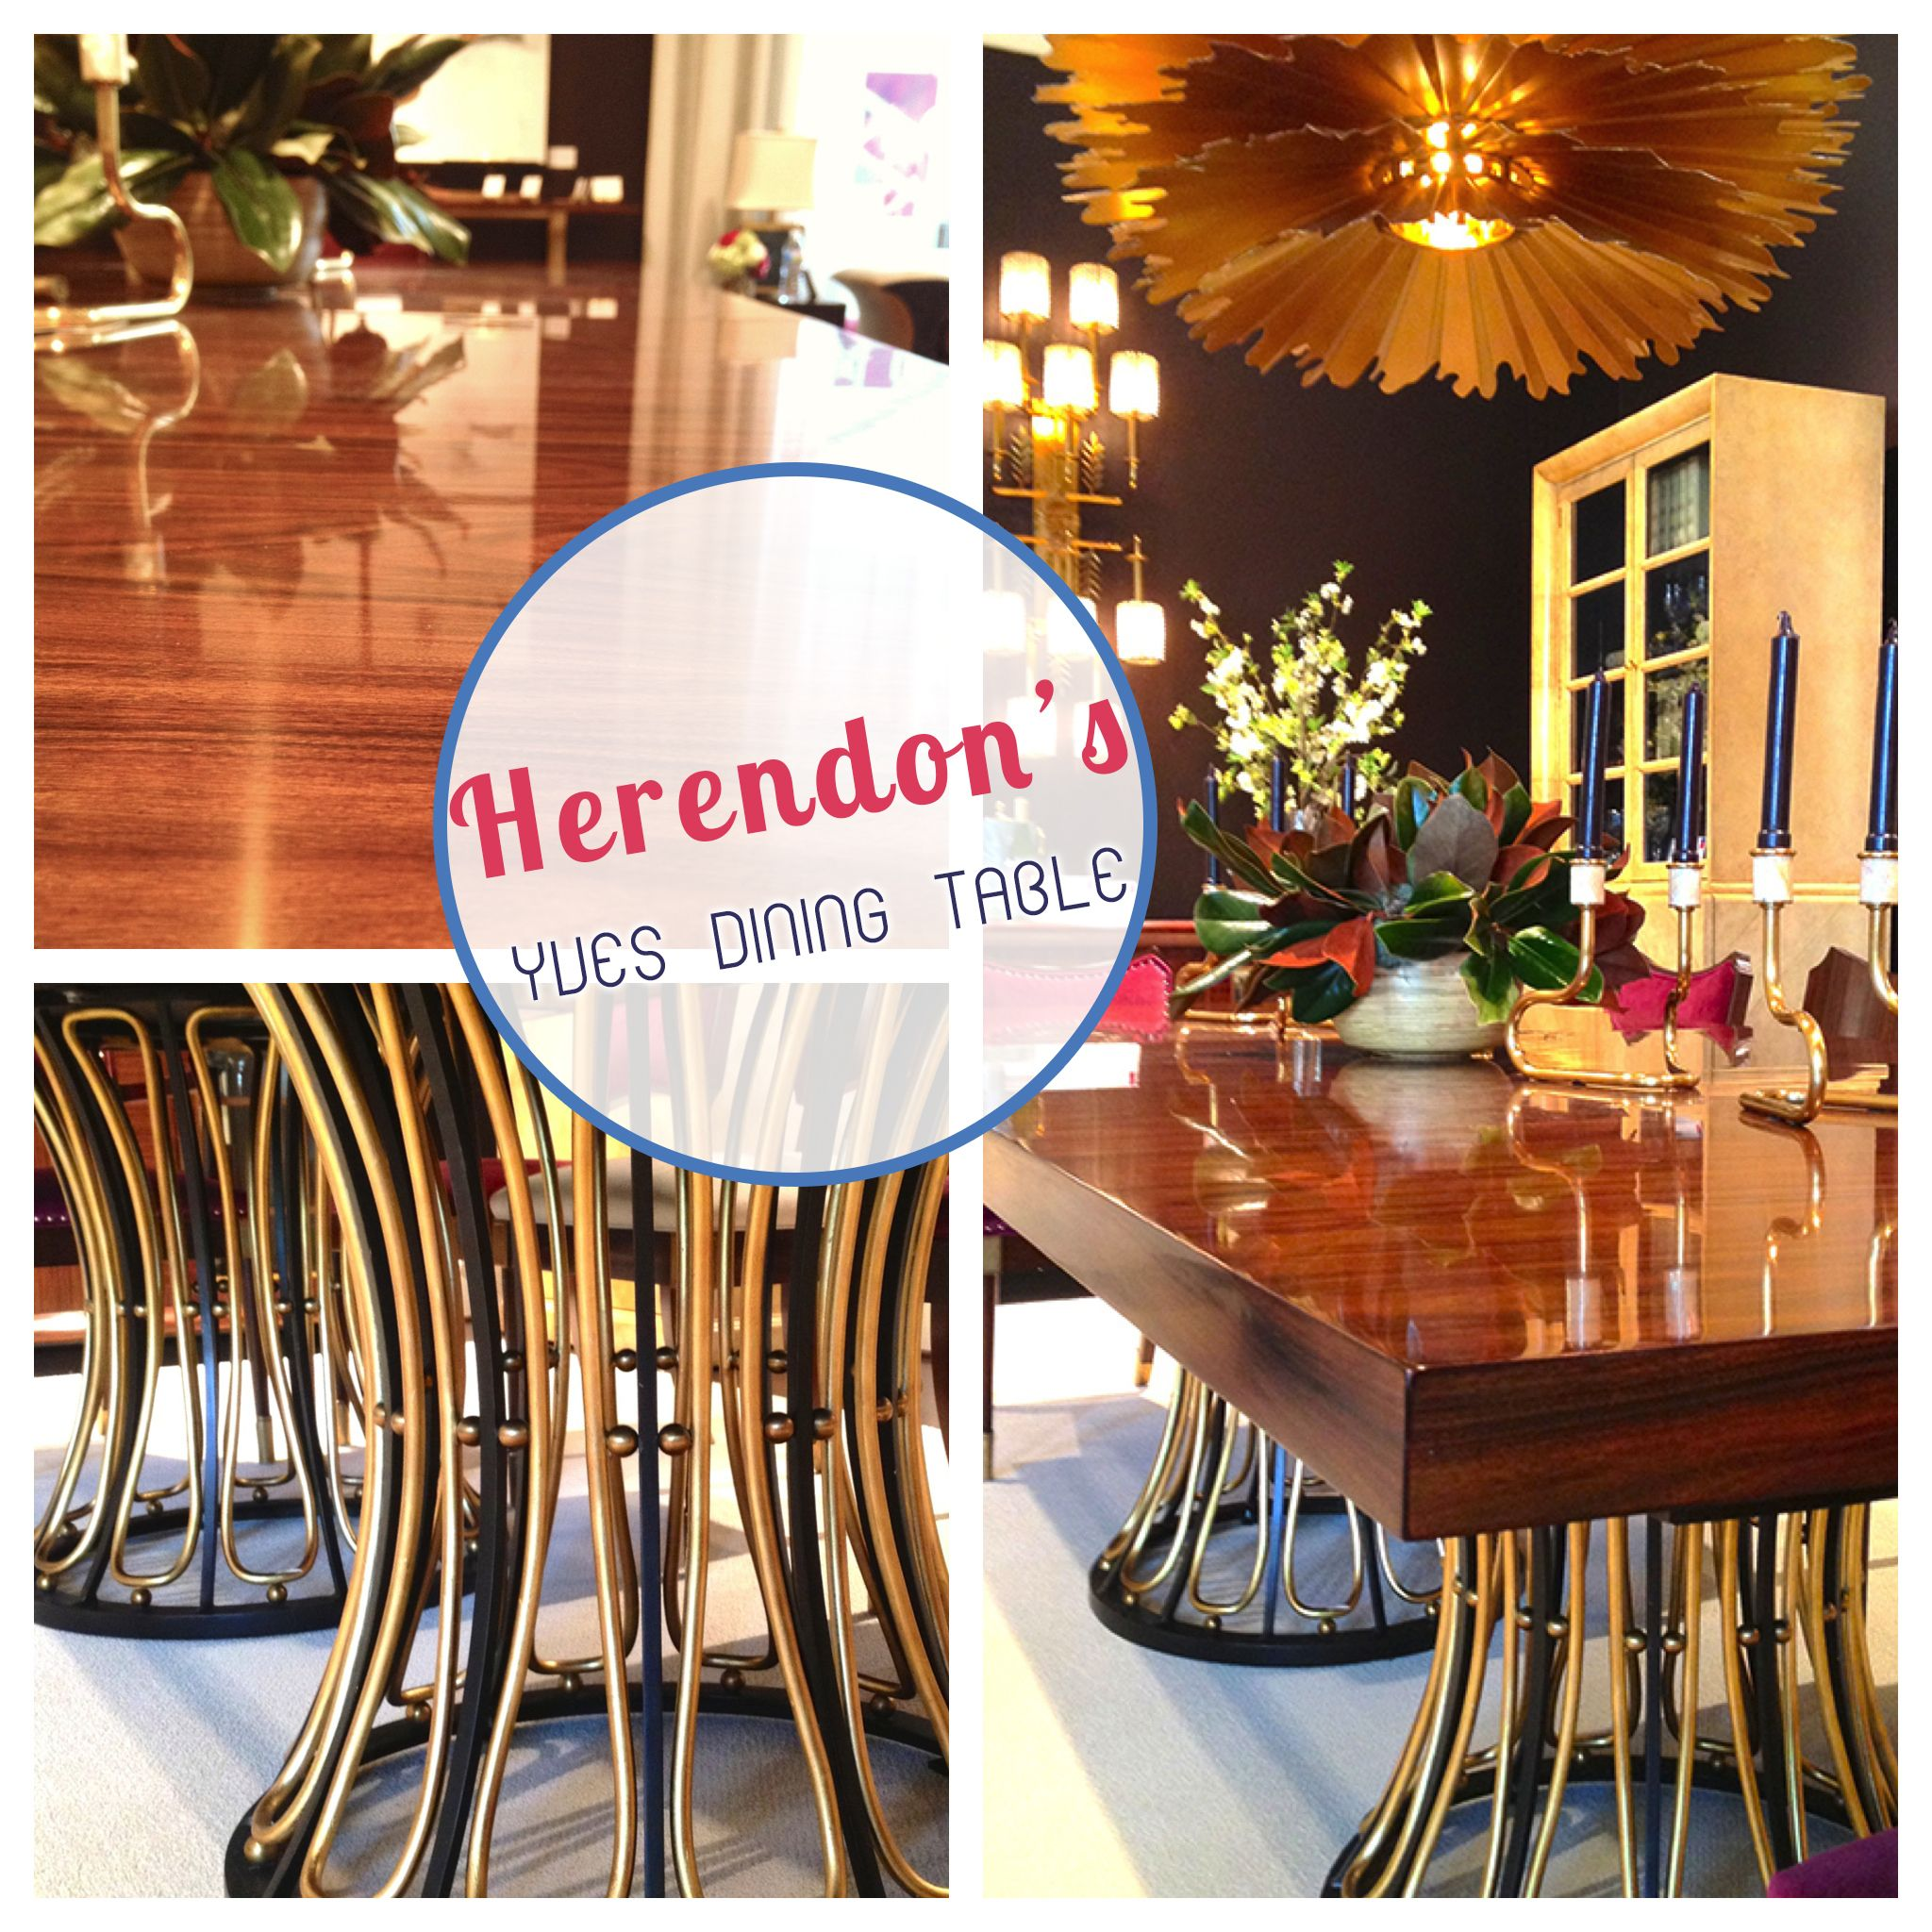 herendon the yves dining table by celerie kemble for herendon is such a - Celerie Kemble Furniture